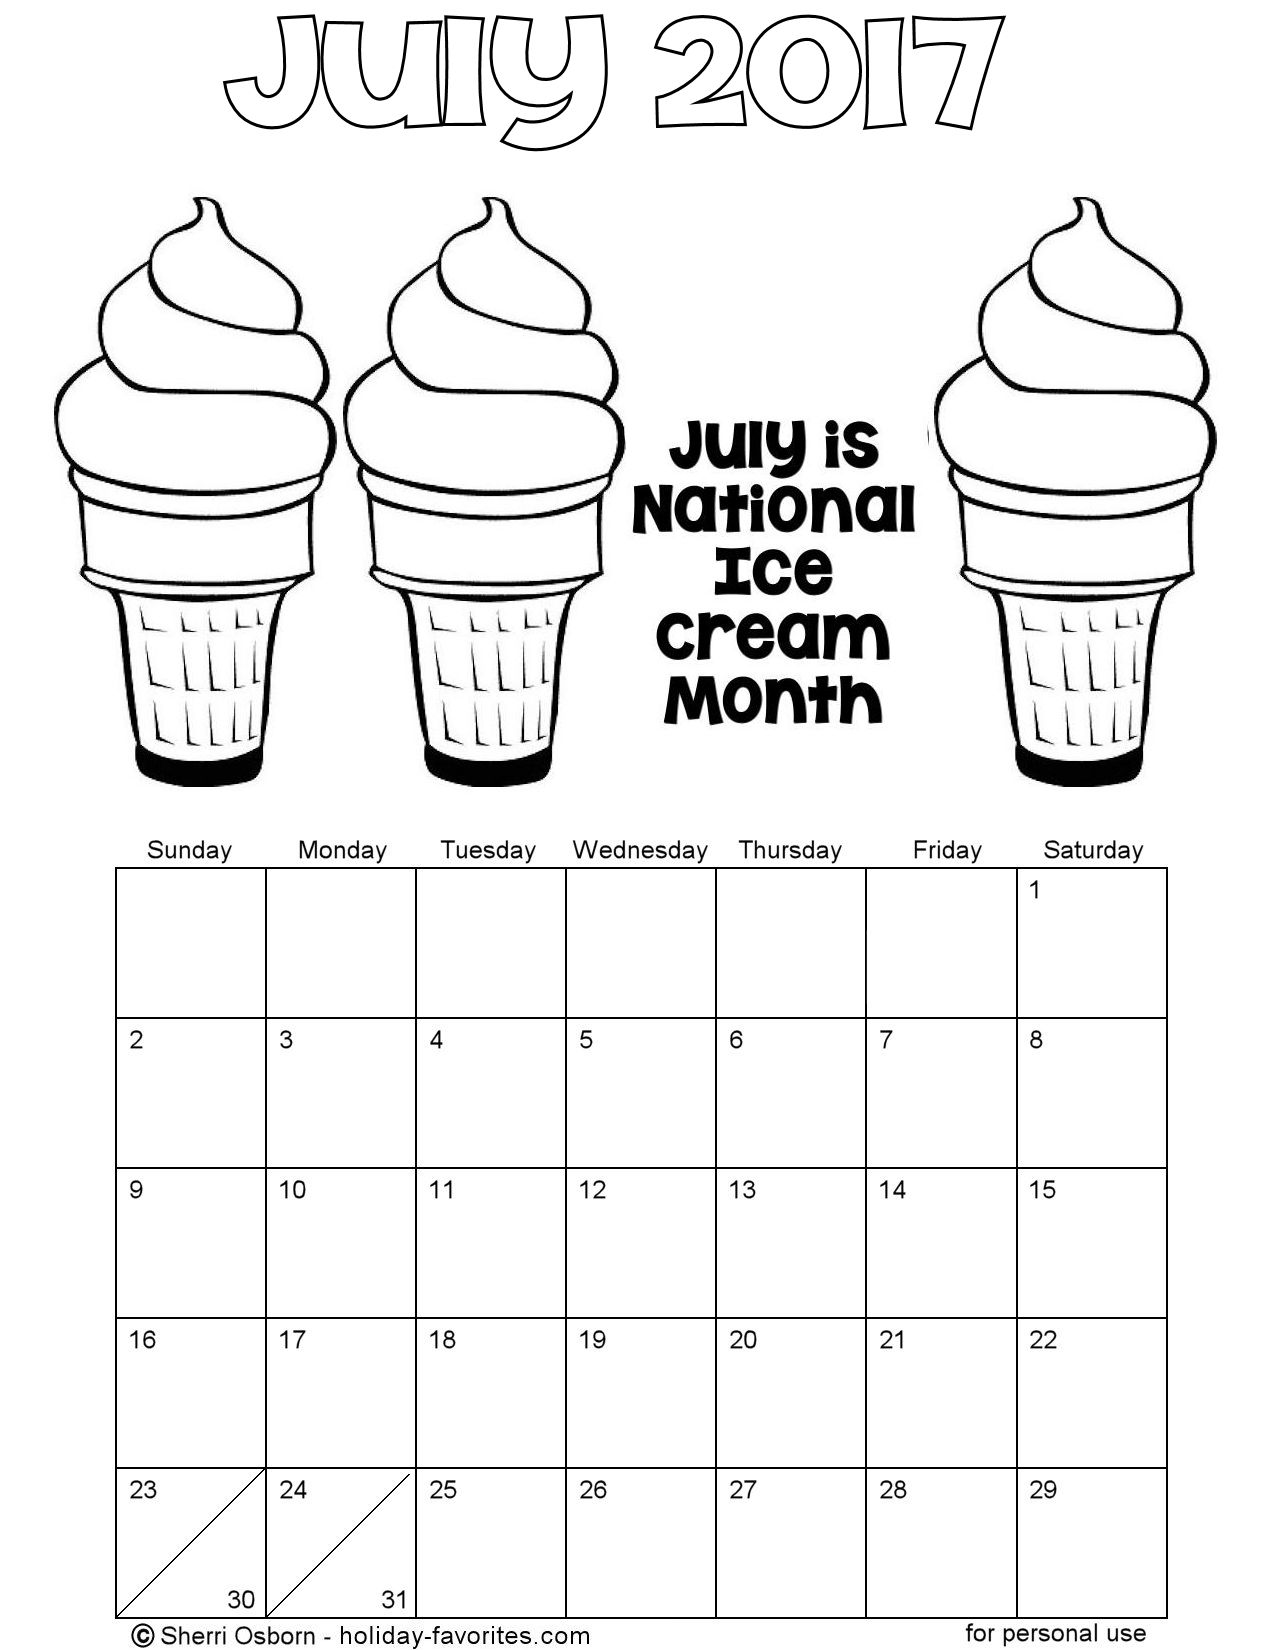 July 2017 Printable Ice Cream Coloring Calendar Page